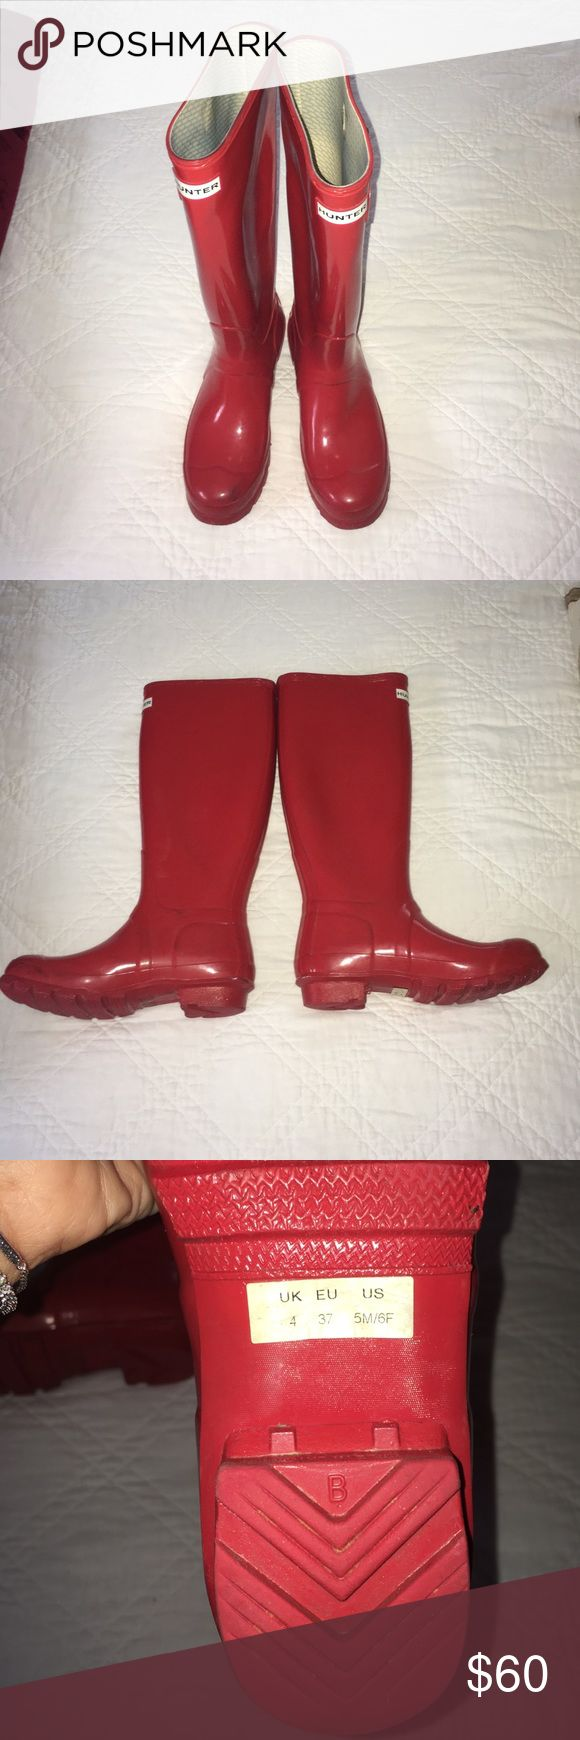 25+ best ideas about Red Hunter Rain Boots on Pinterest | Red rain ...